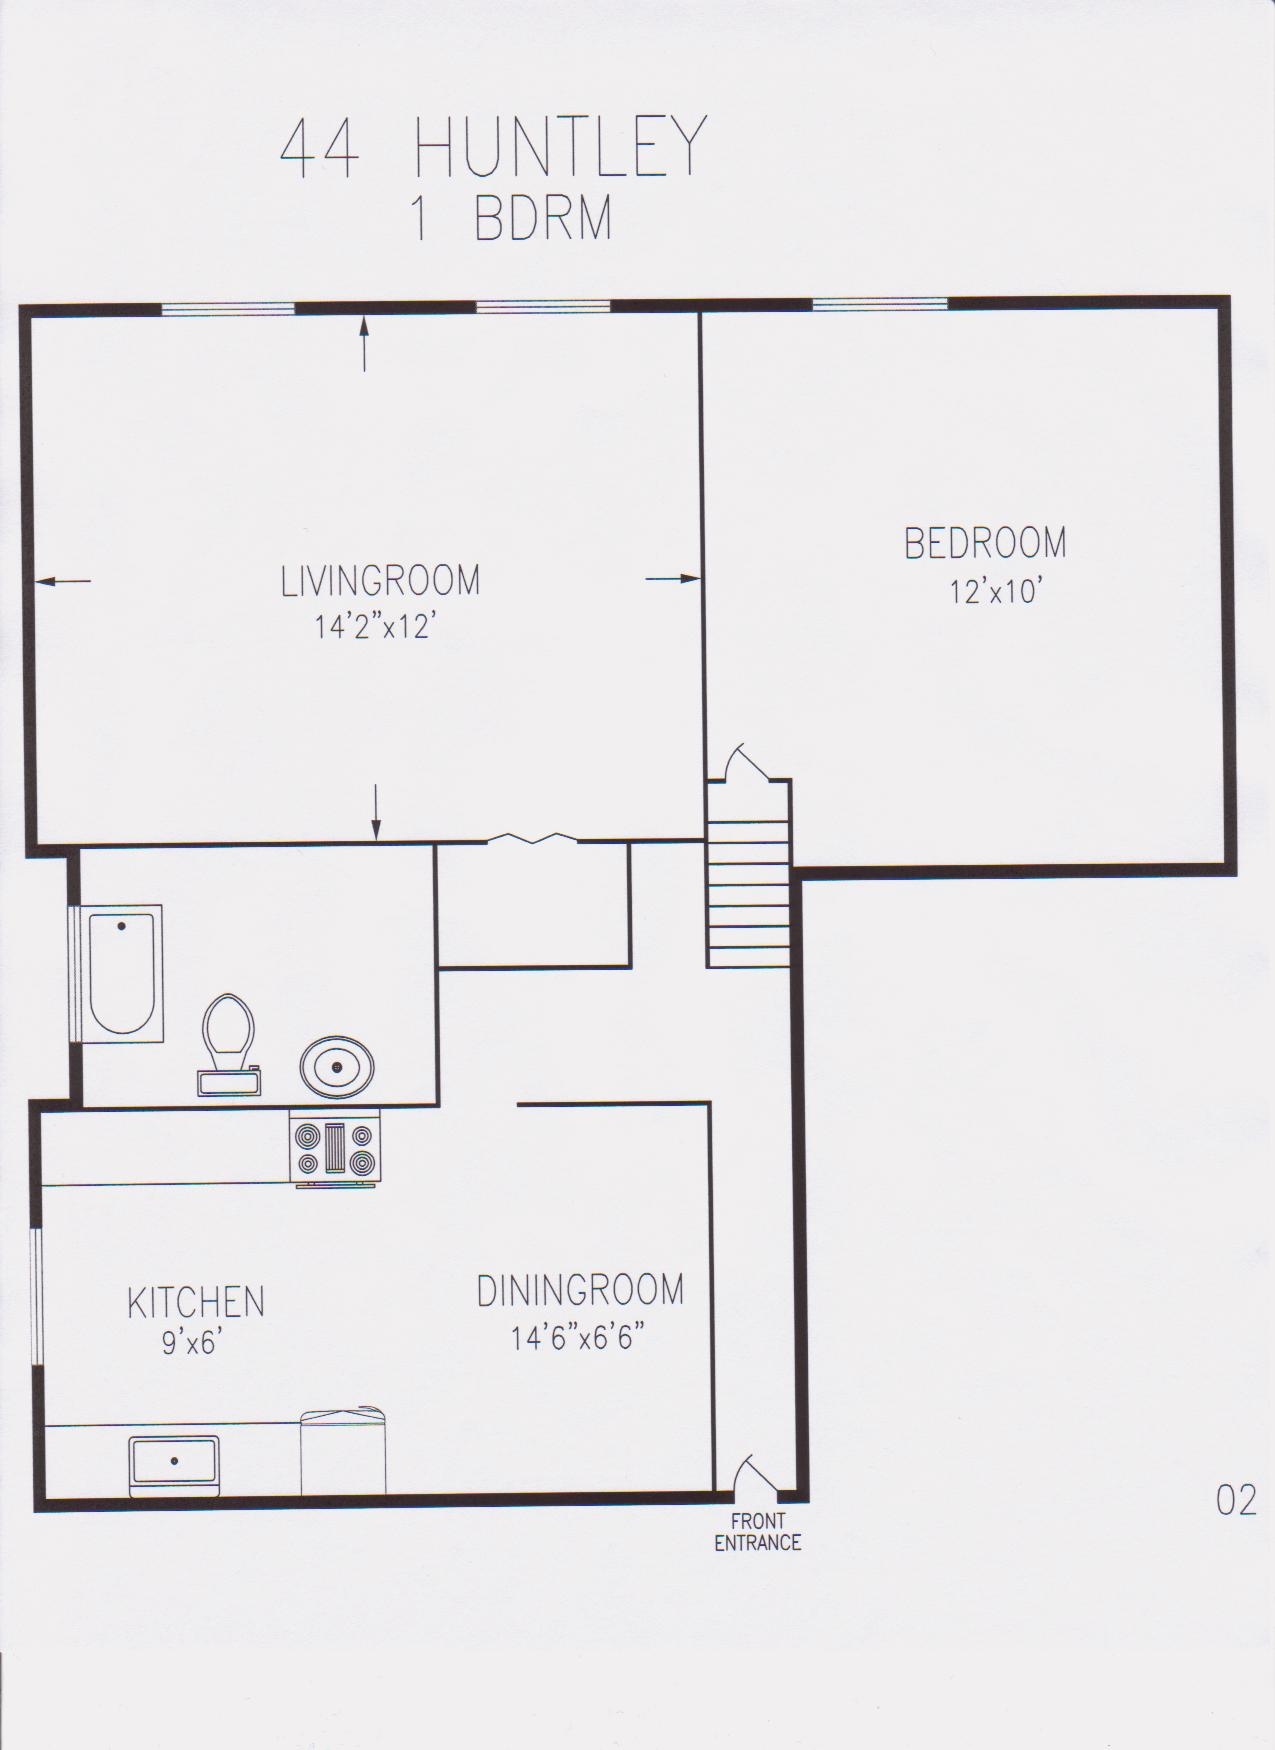 44 huntley street 171 mercedes homes inc 37 best images about cabin plans on pinterest log cabin